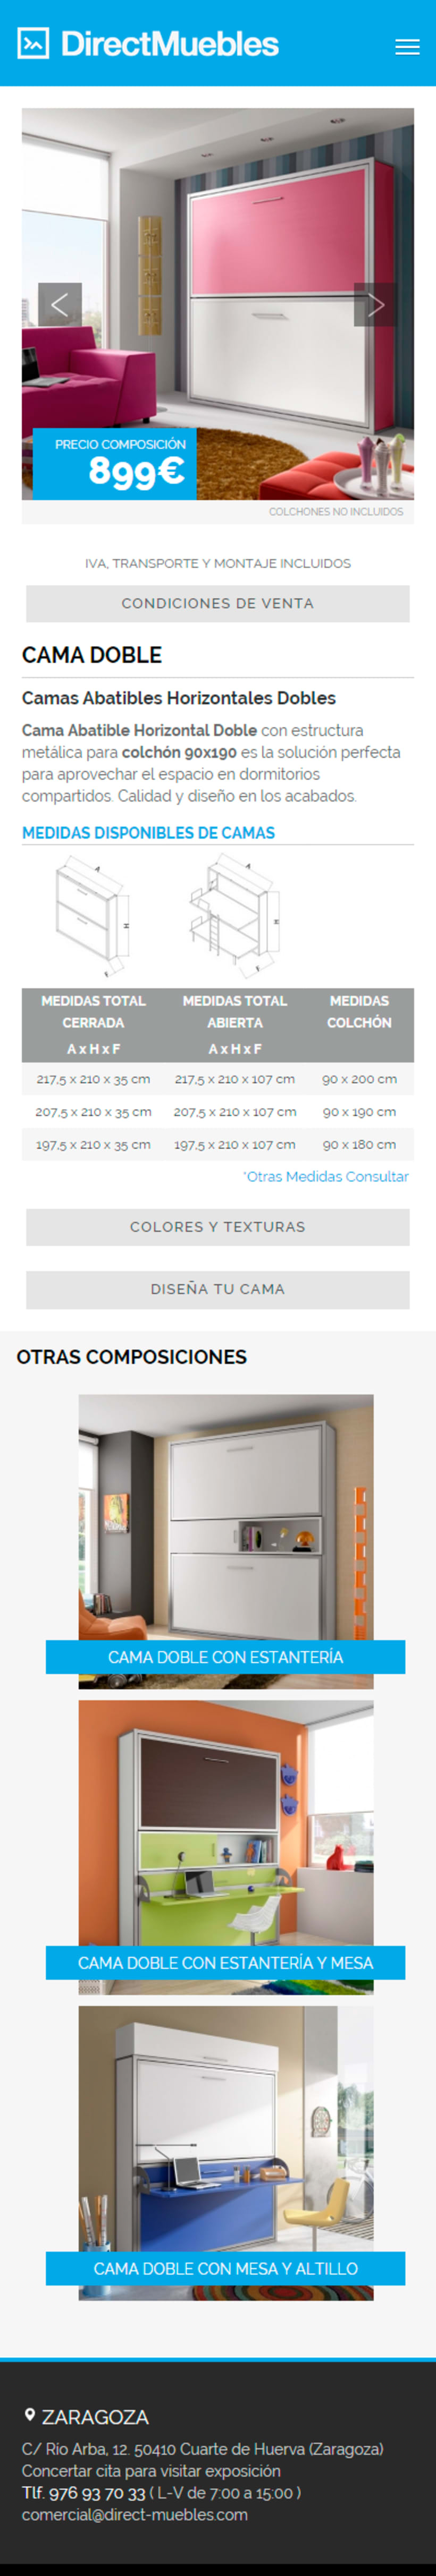 Direct Muebles - Responsive Design 5